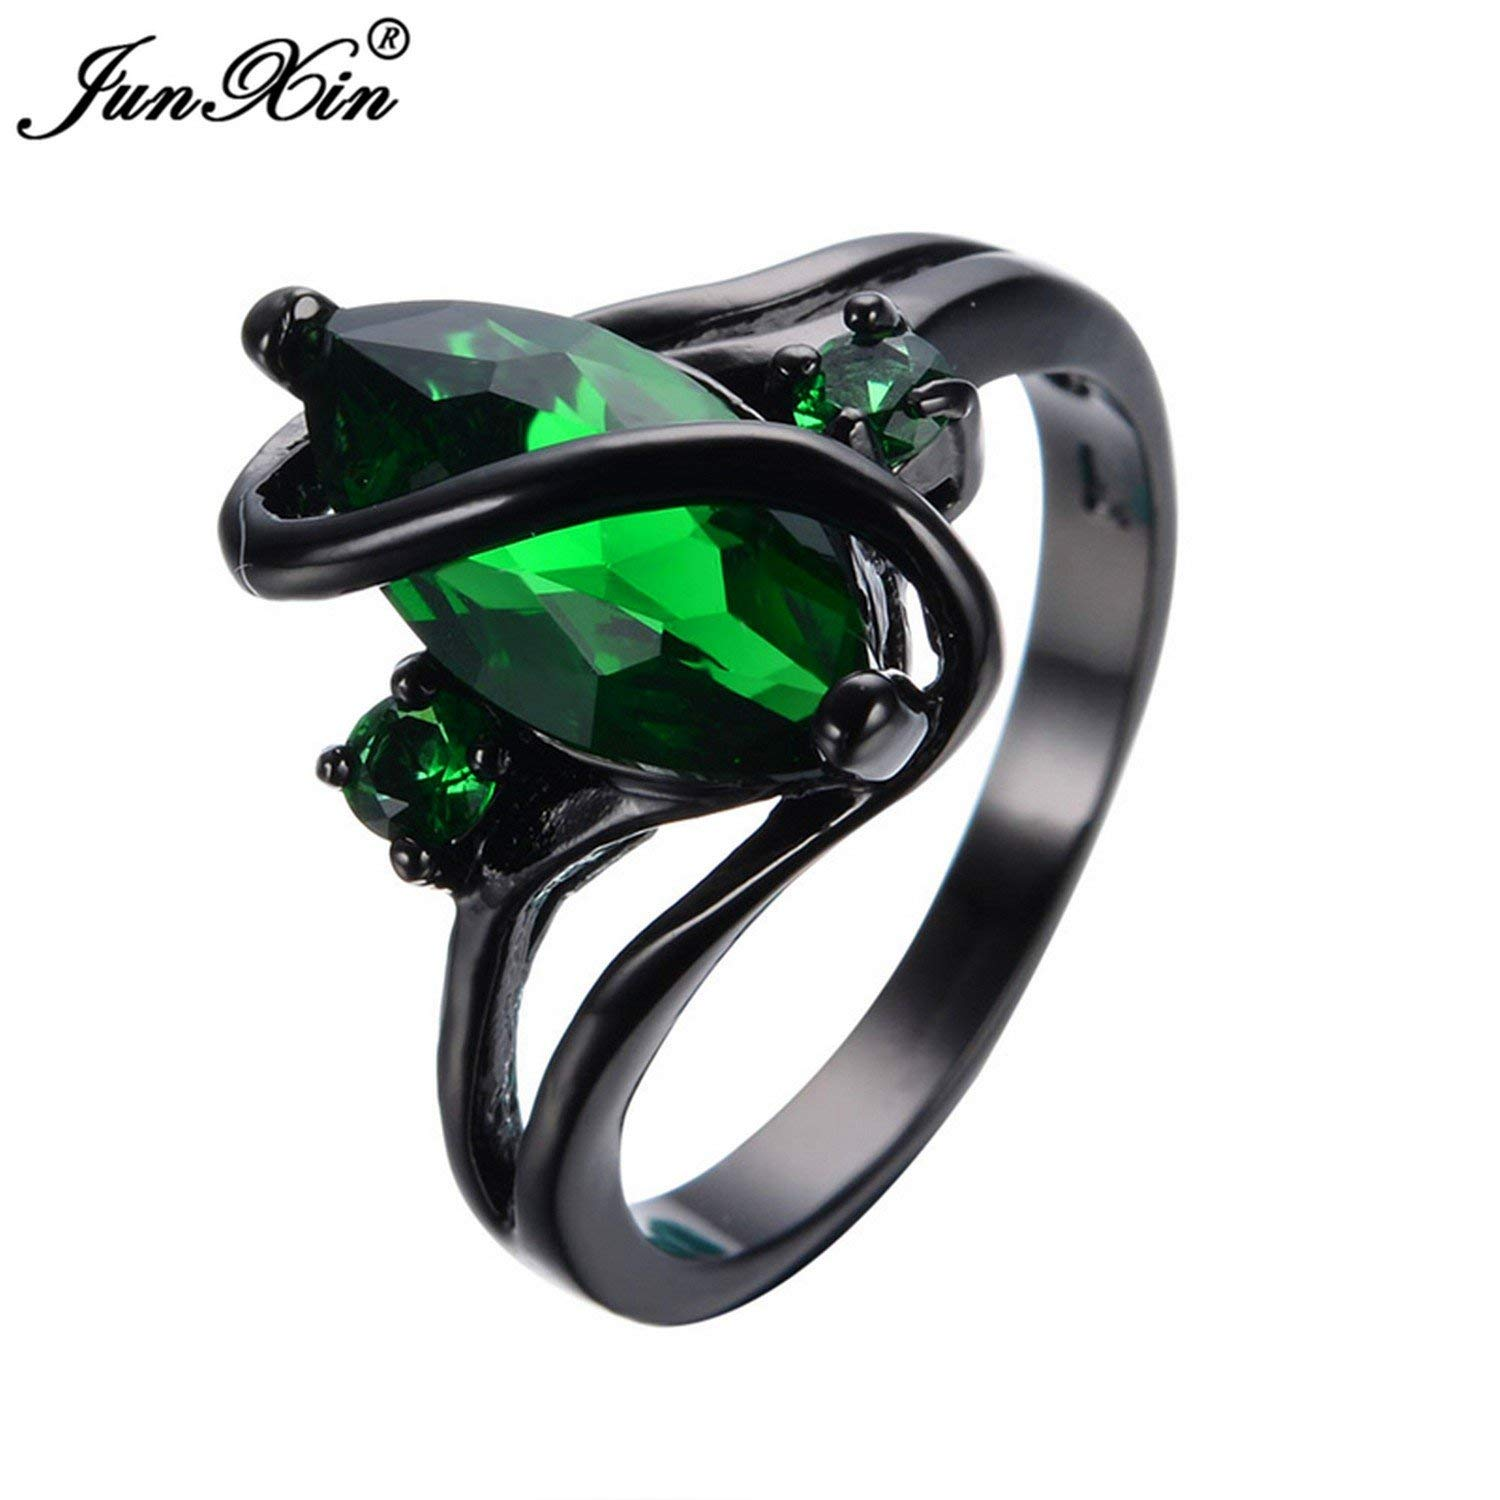 Dudee Jewelry Elegant Black Gold Filled Emerald CZ Ring Vintage Wedding Ring Eve Fashion Jewelry RB0048